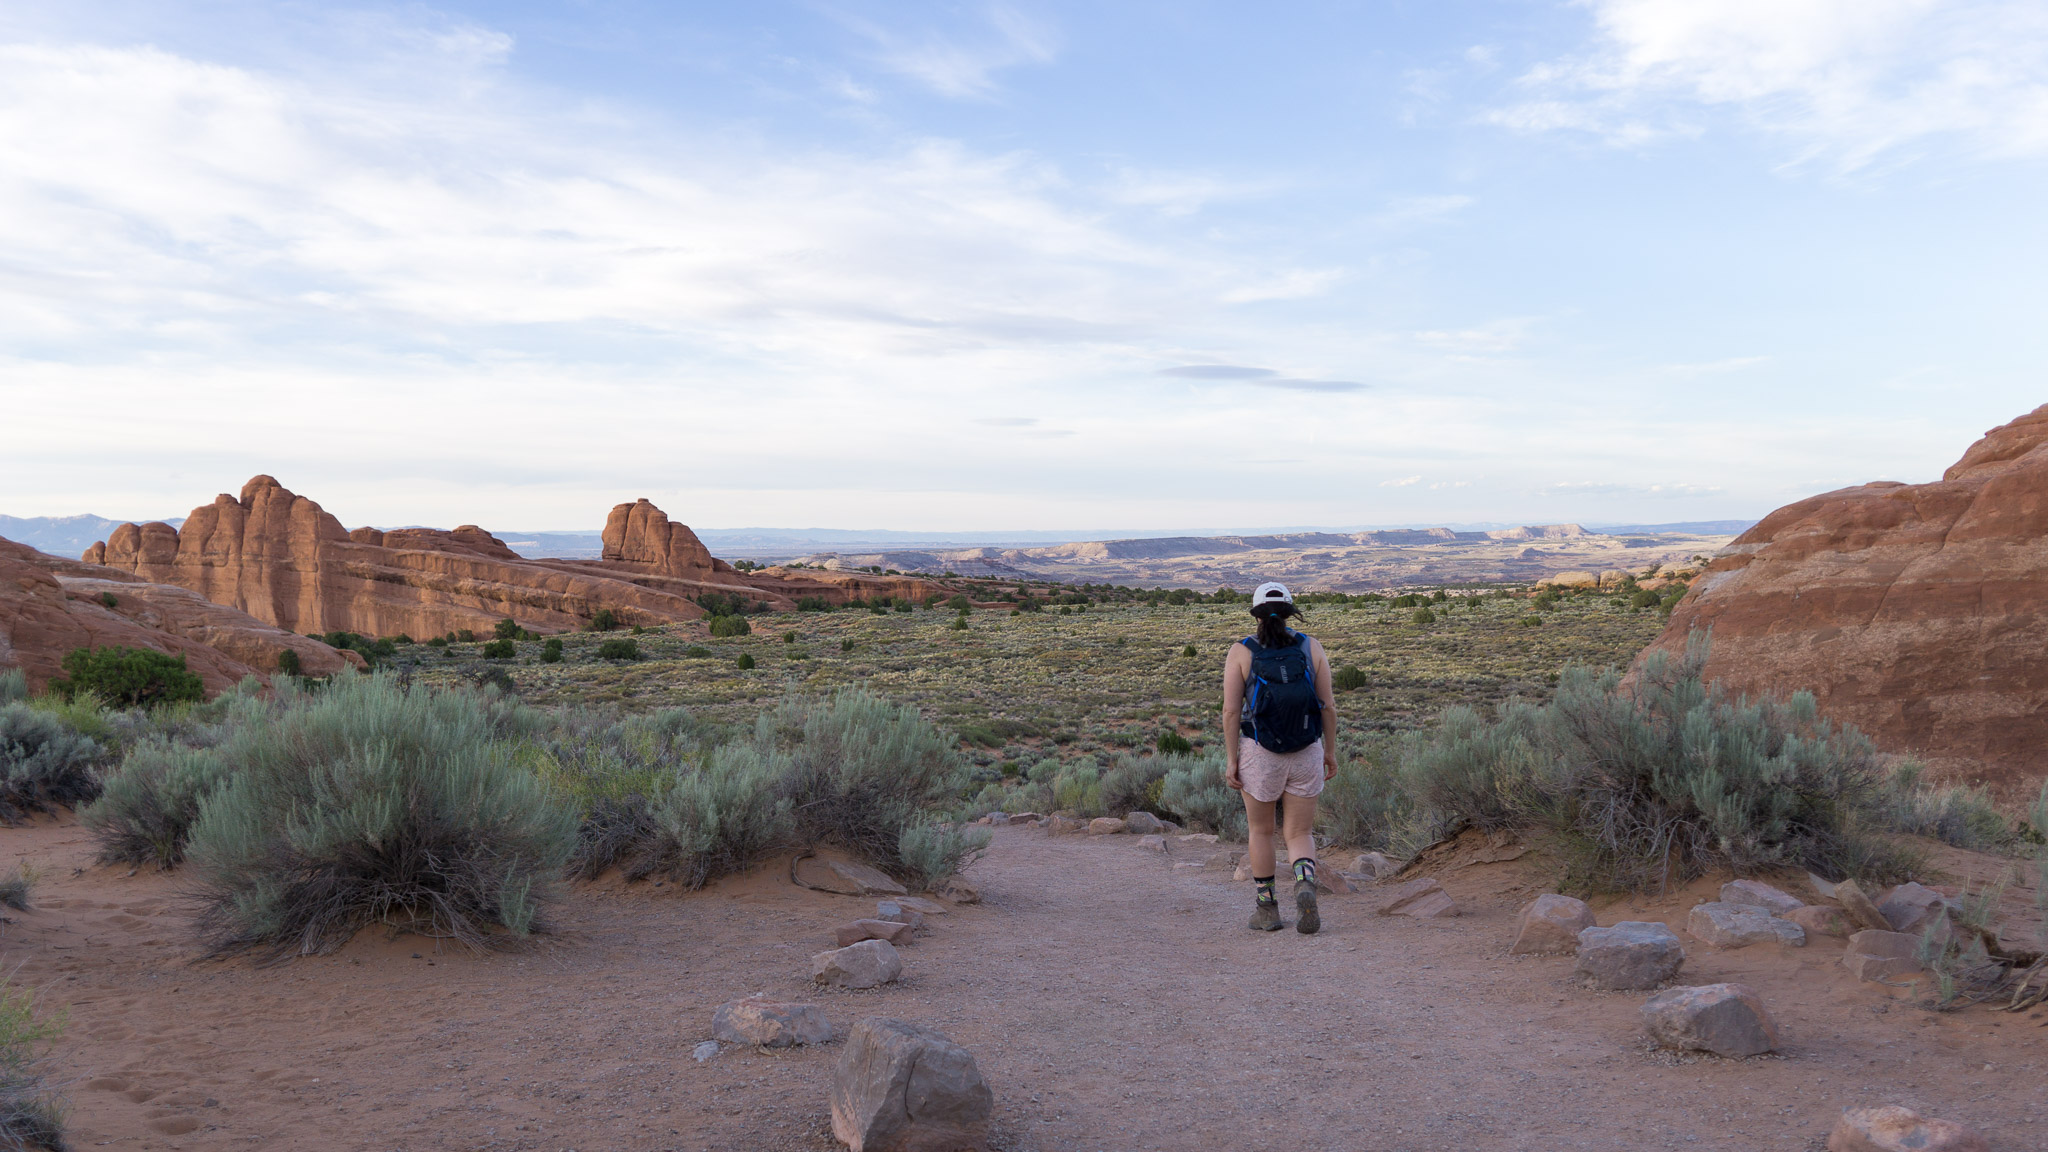 Hiking to Landscape Arch